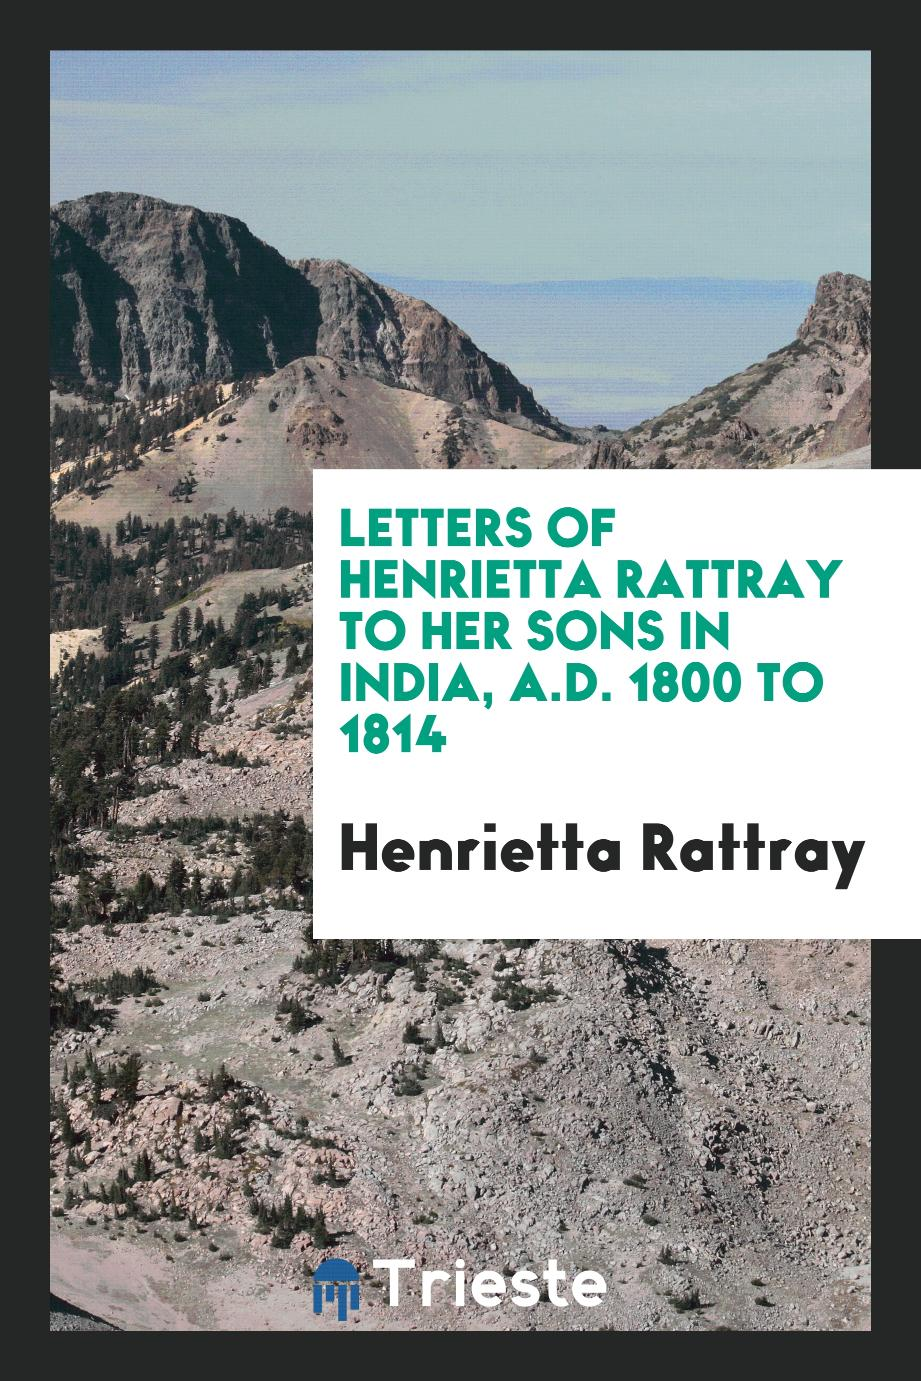 Letters of Henrietta Rattray to Her Sons in India, A.D. 1800 to 1814